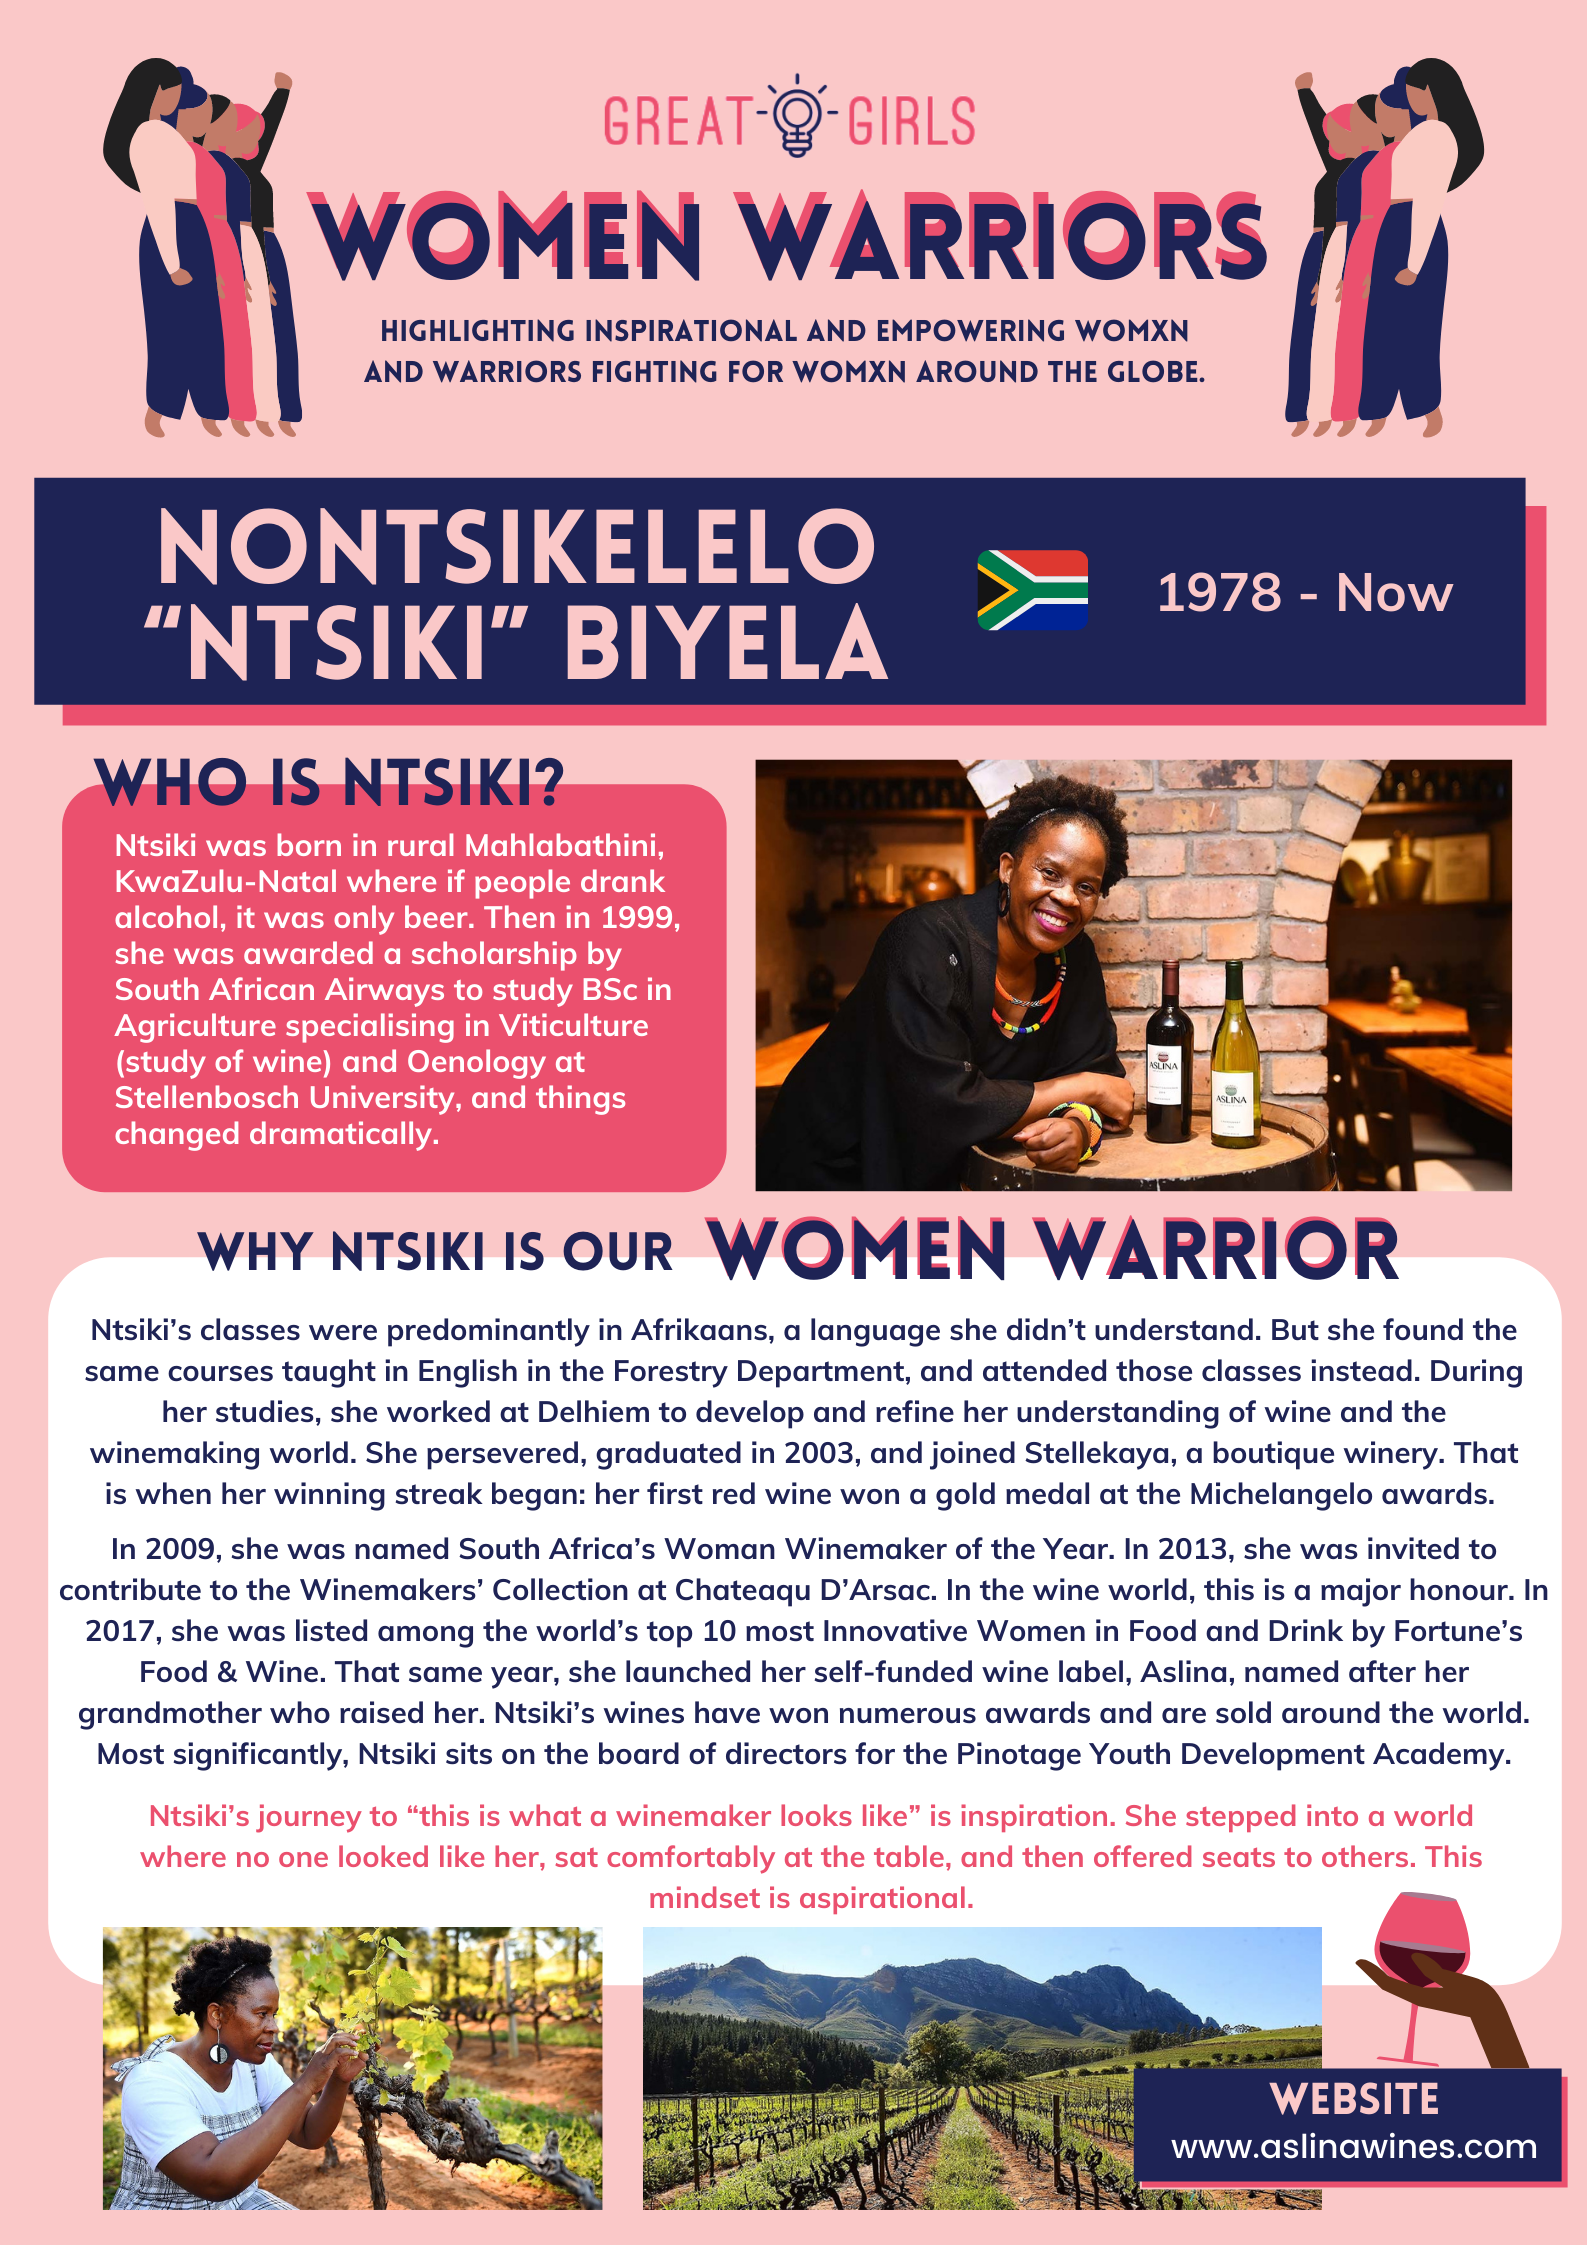 Women Warrior - Nontsikelelo Biyela